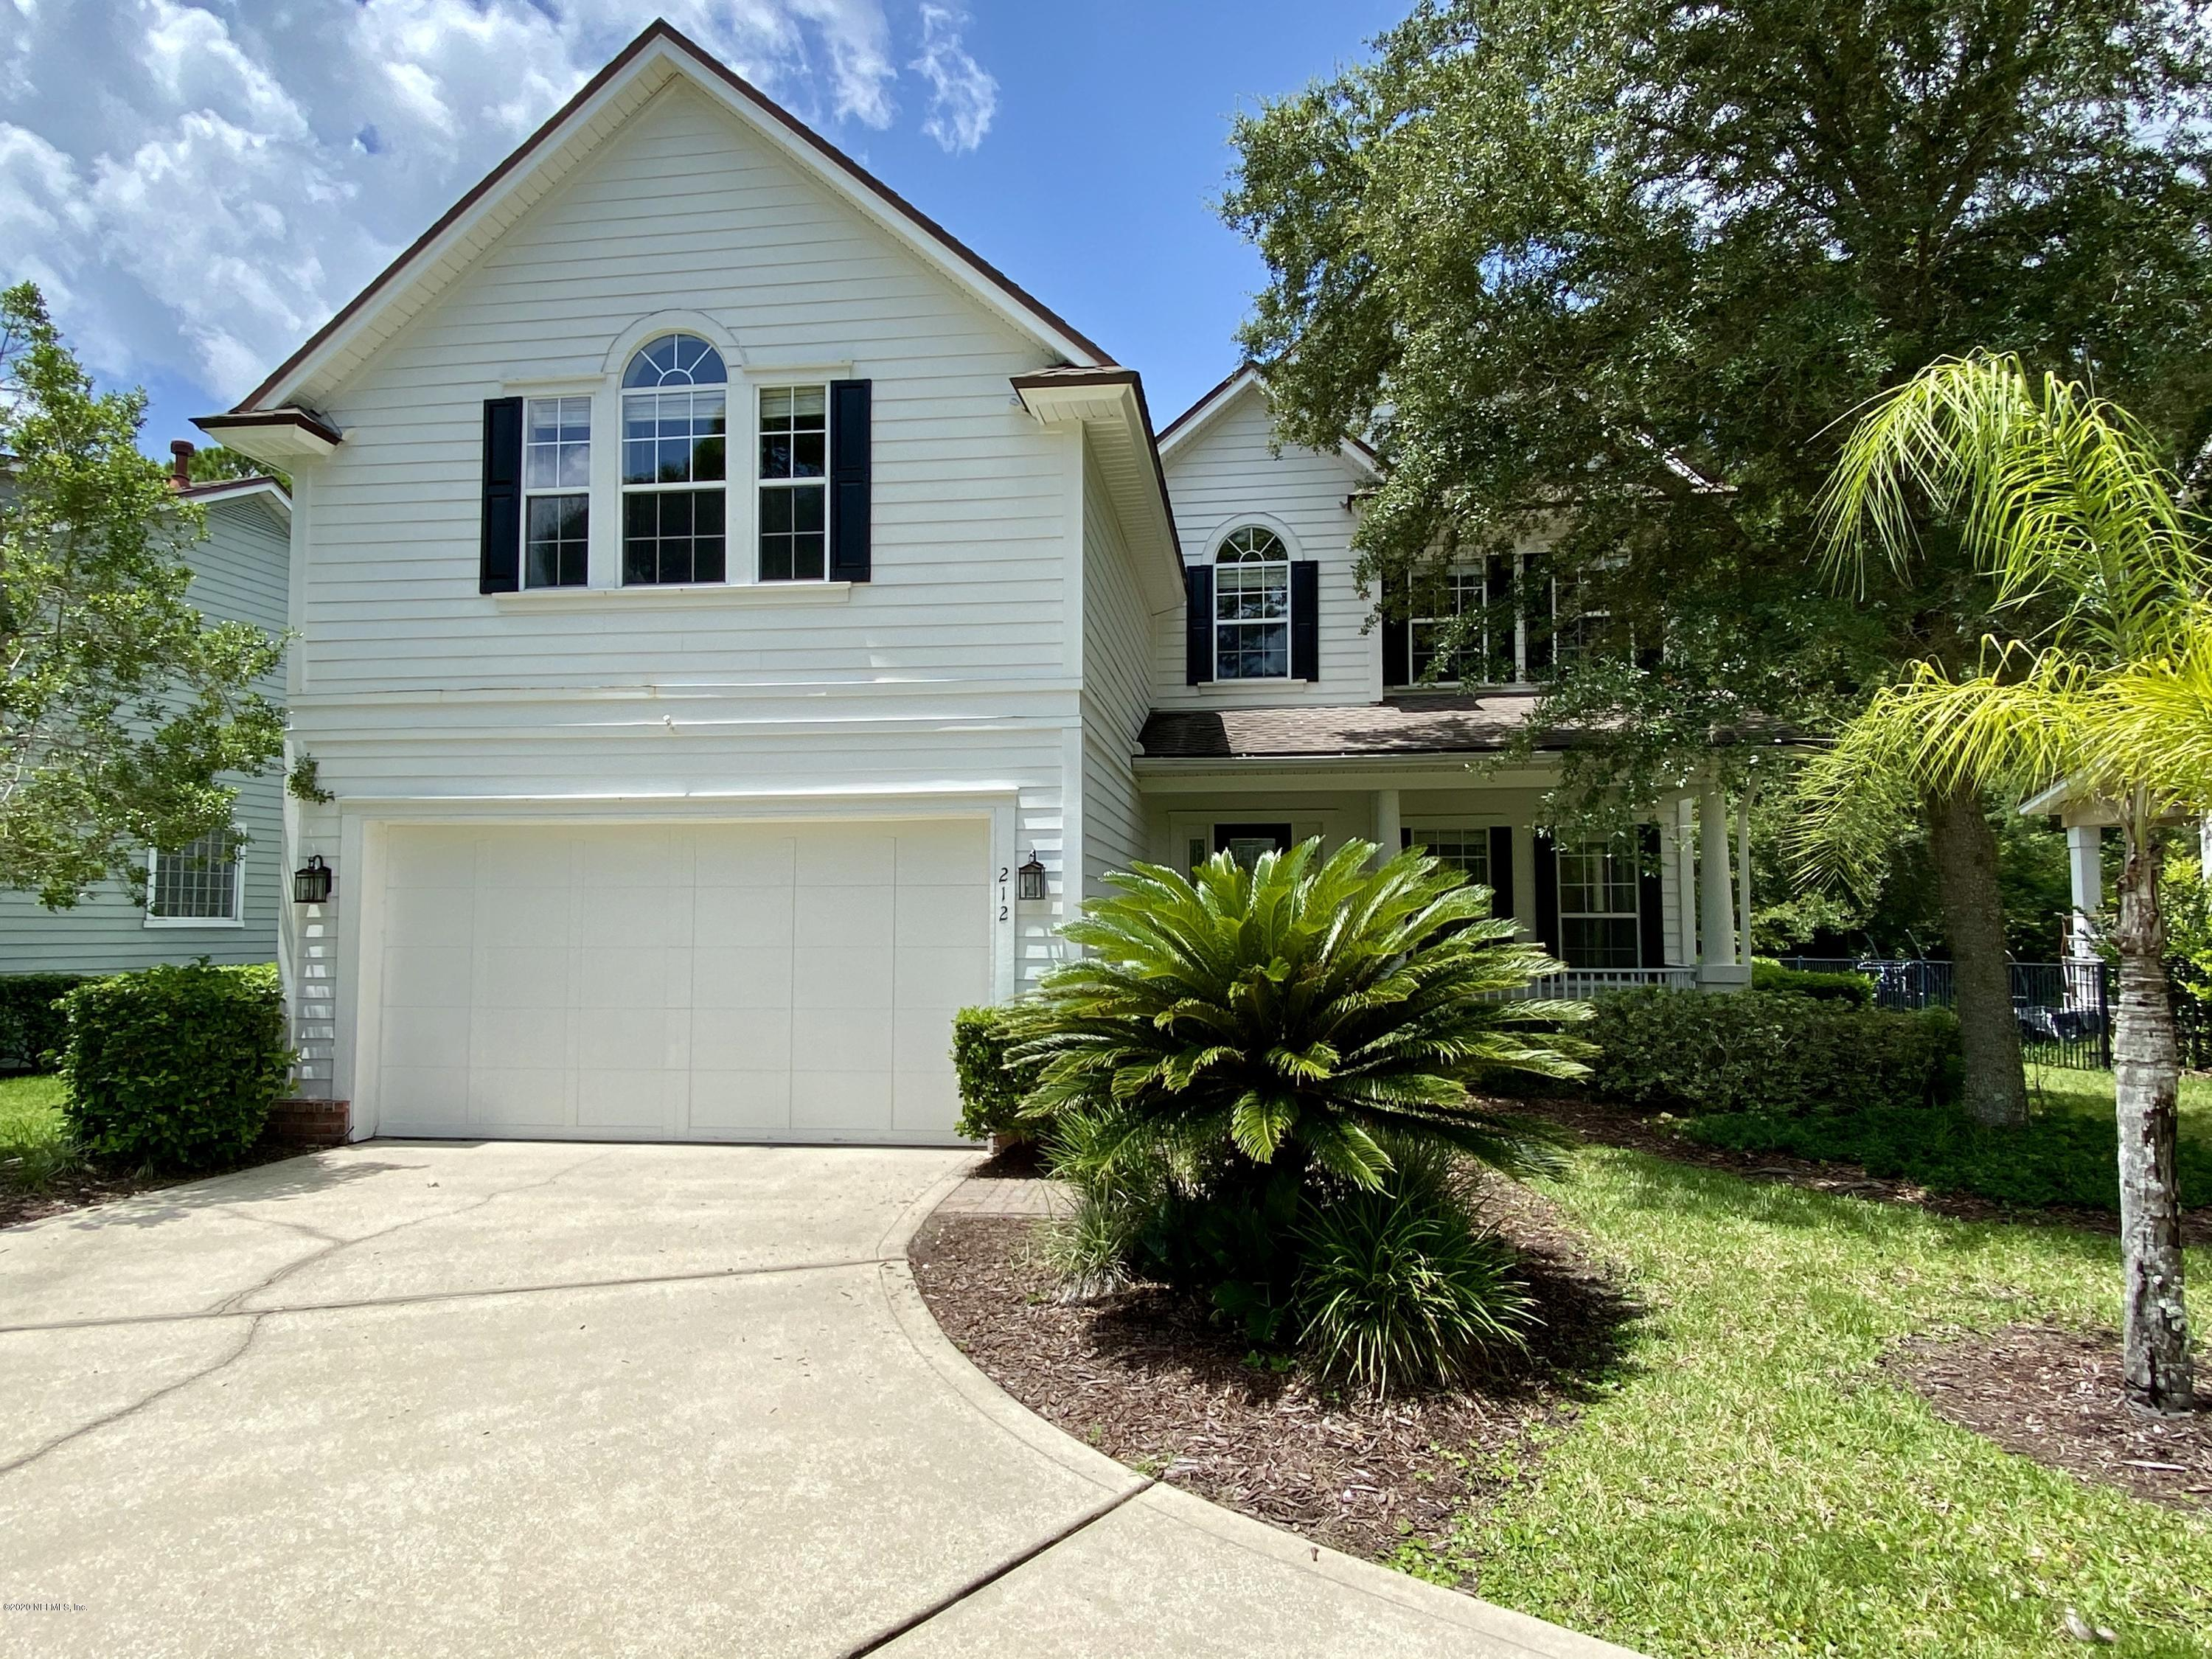 212 CARMINE, ST AUGUSTINE, FLORIDA 32095, 4 Bedrooms Bedrooms, ,2 BathroomsBathrooms,Residential,For sale,CARMINE,1061040